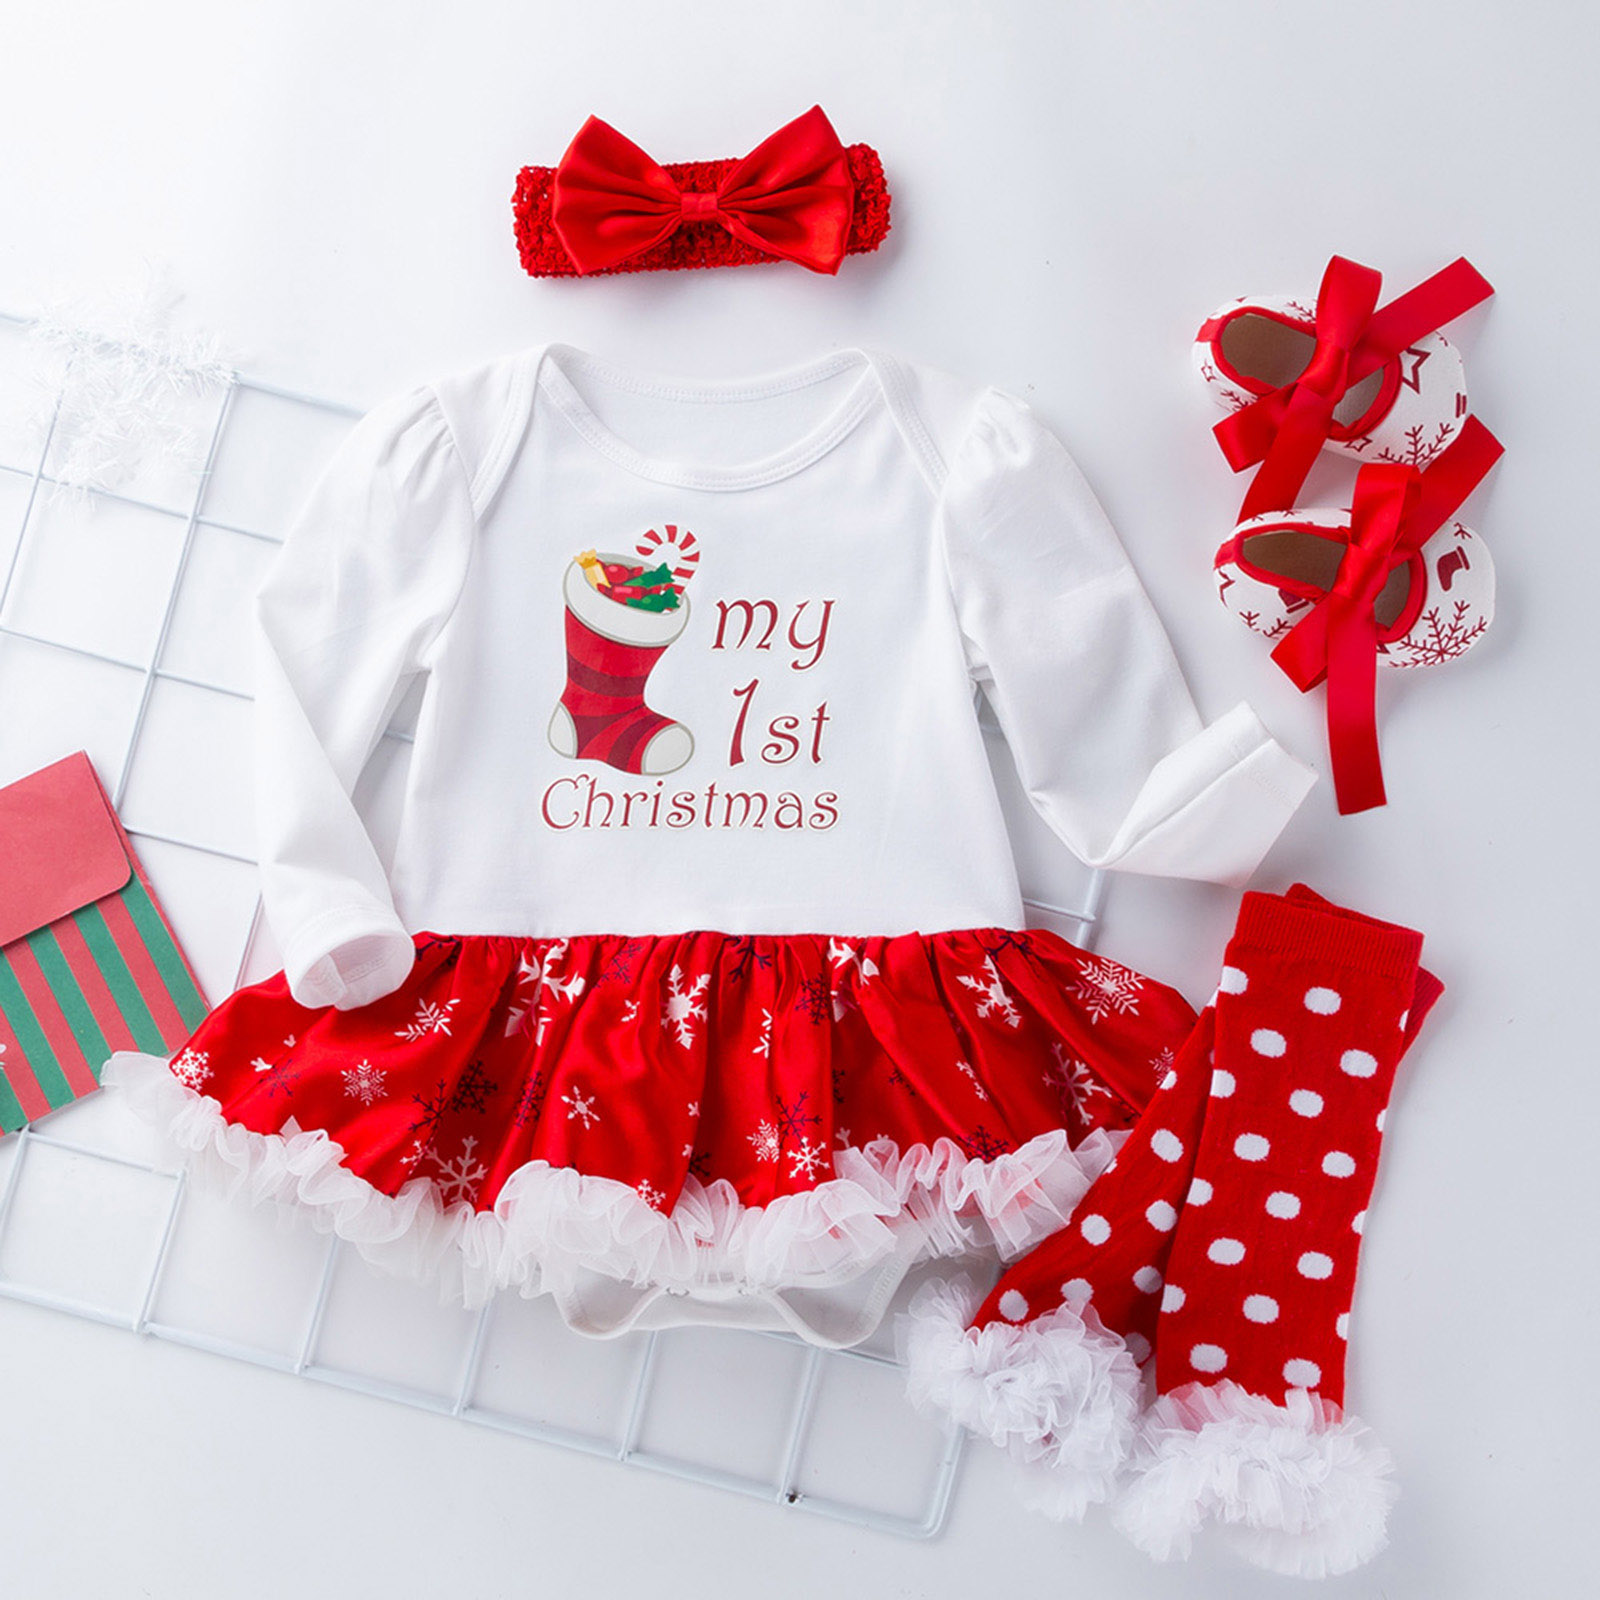 Newborn Infant Baby Girls Xmas Party Tutu Dress Kids Romper Outfits ...